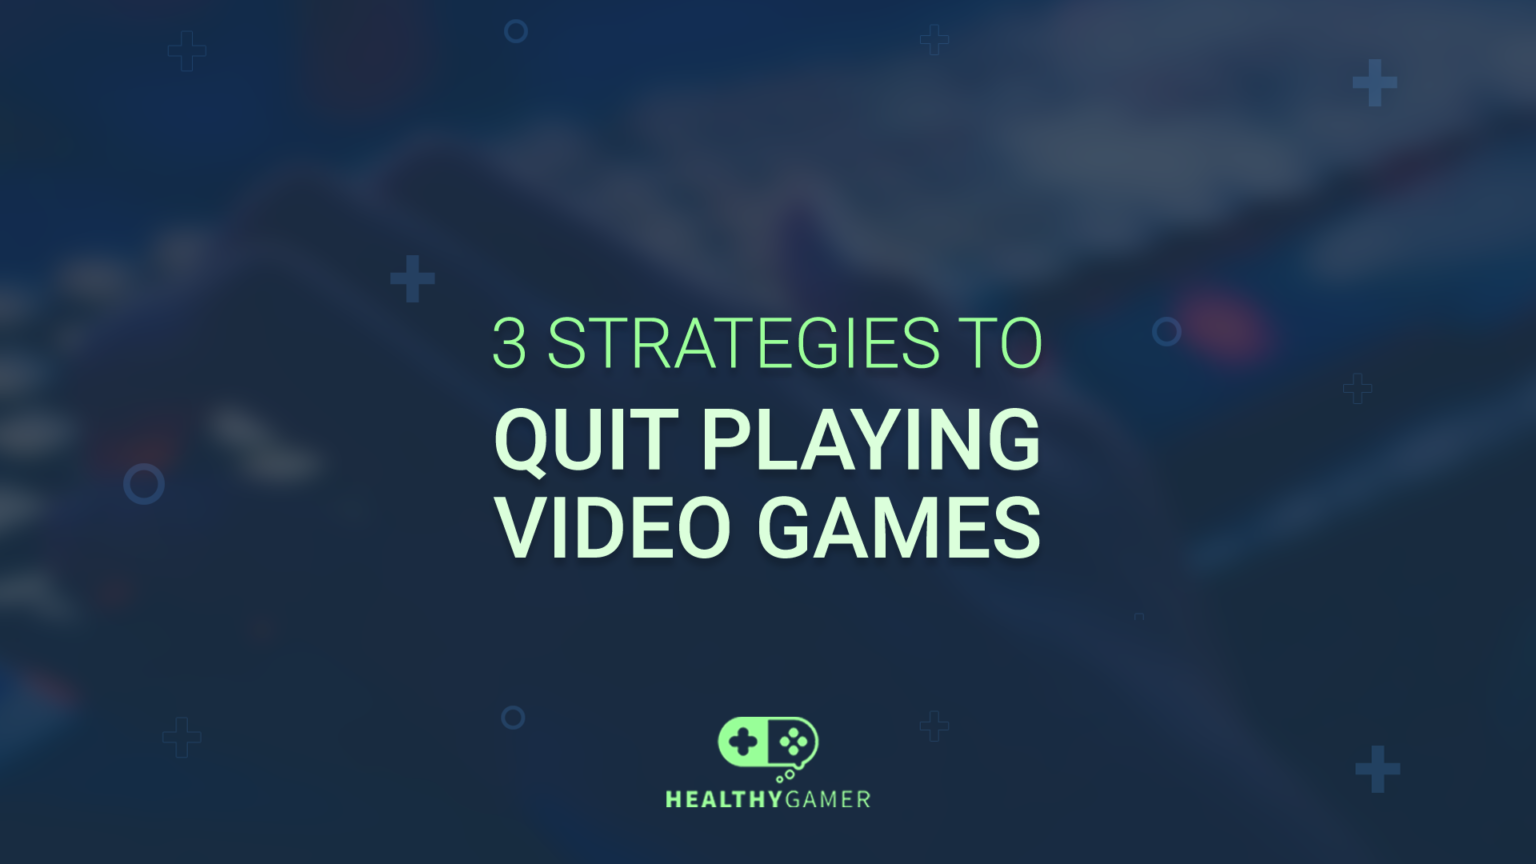 How to Stop Playing Video Games: 3 Effective Strategies